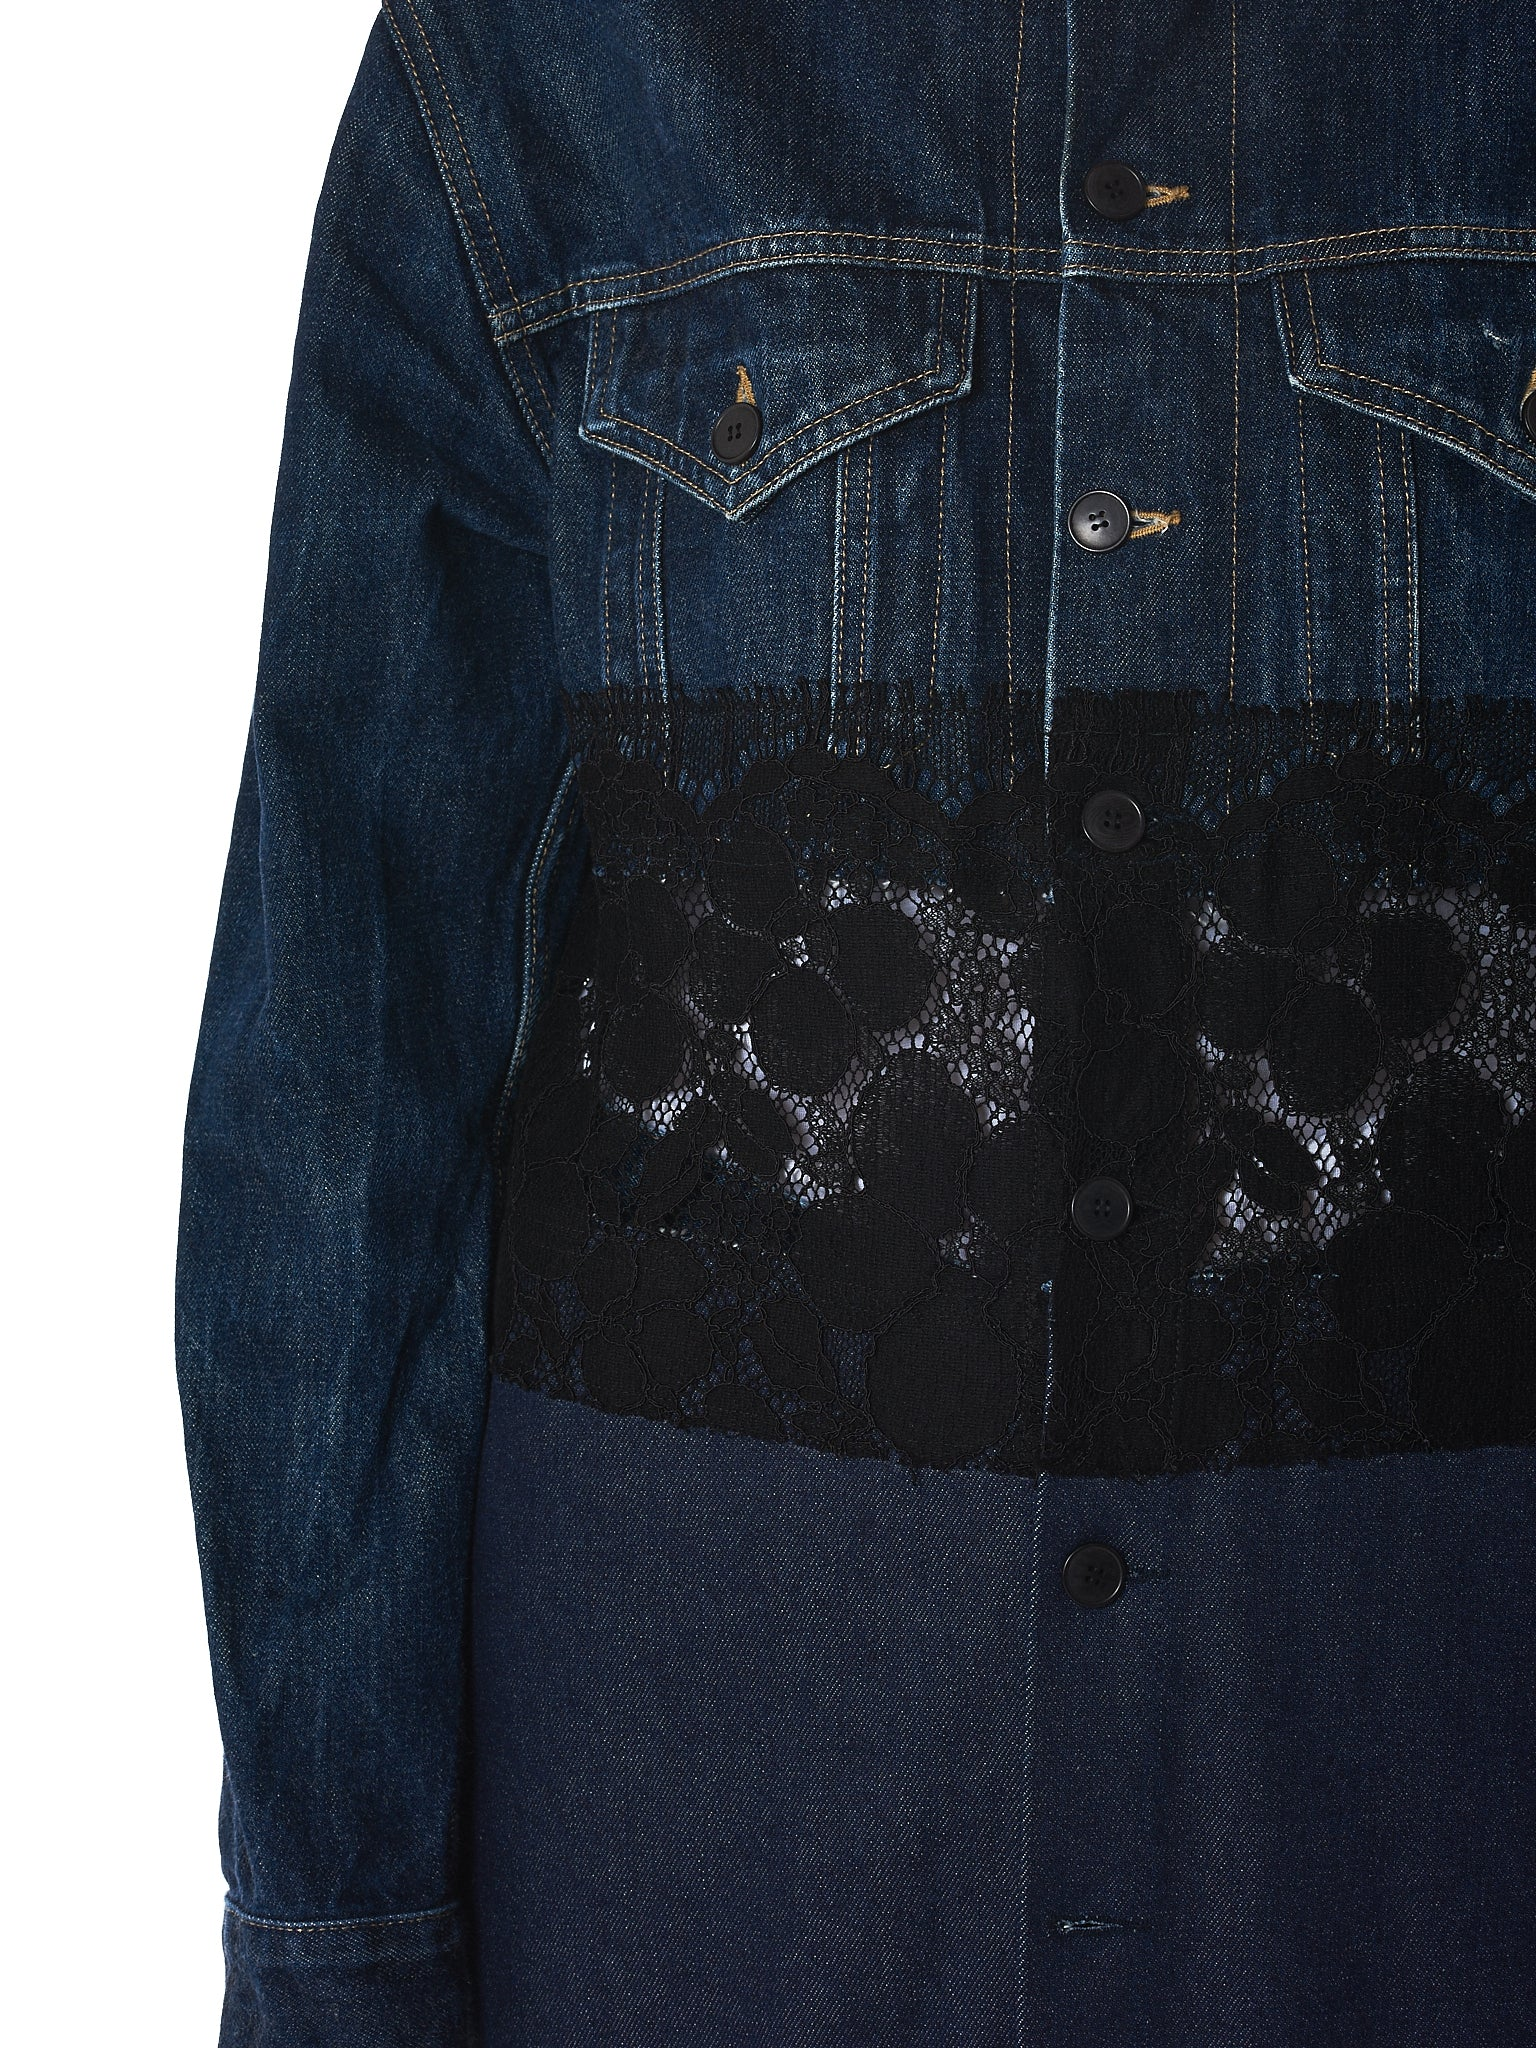 Lutz Huelle Denim Coat - Hlorenzo Detail 2